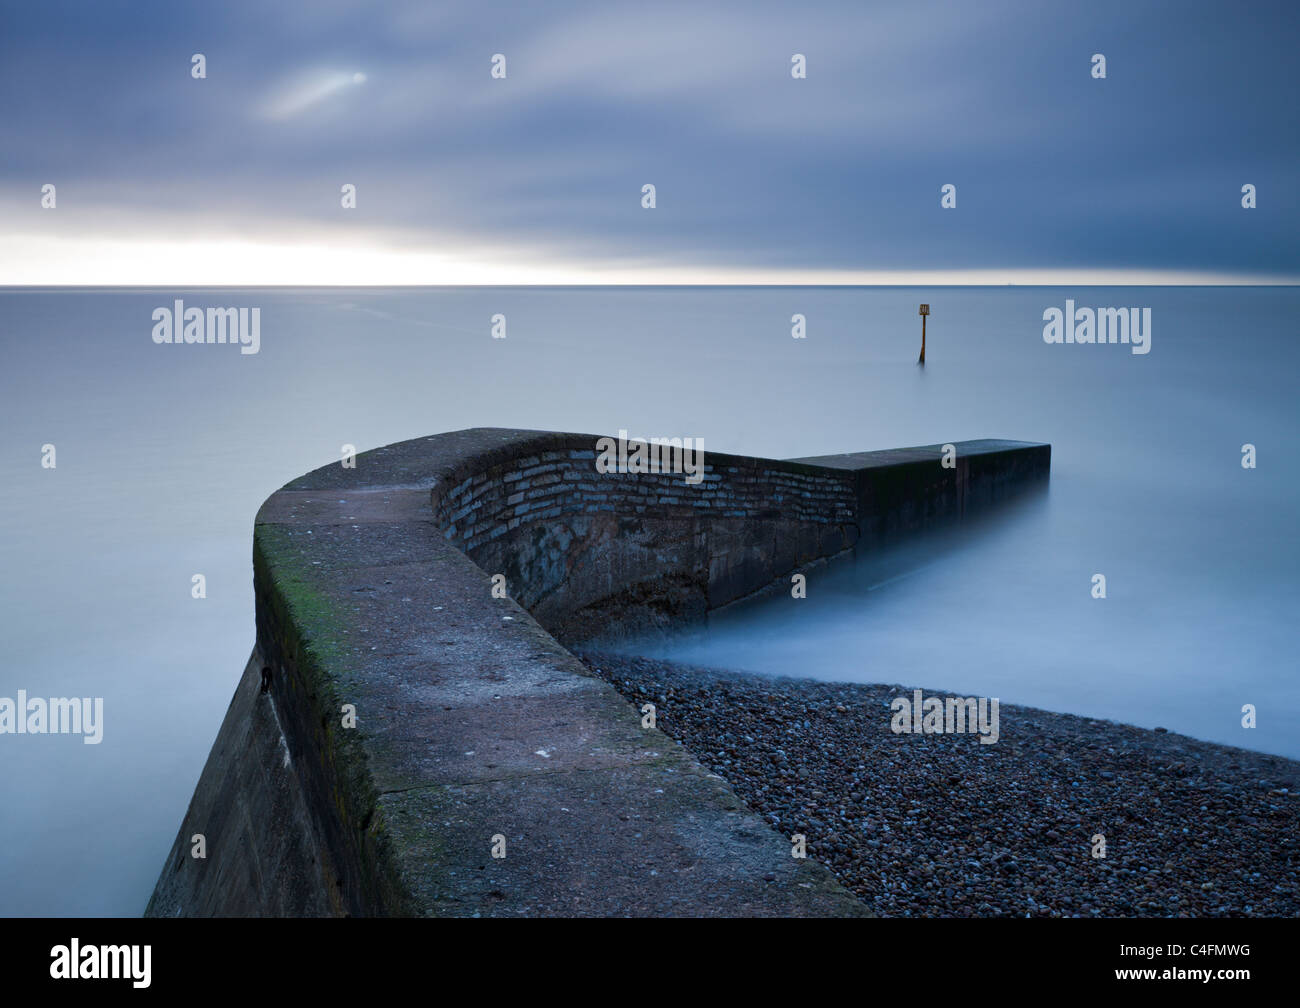 Stone jetty on the seafront at Sidmouth, Devon, England. Winter (February) 2011. - Stock Image